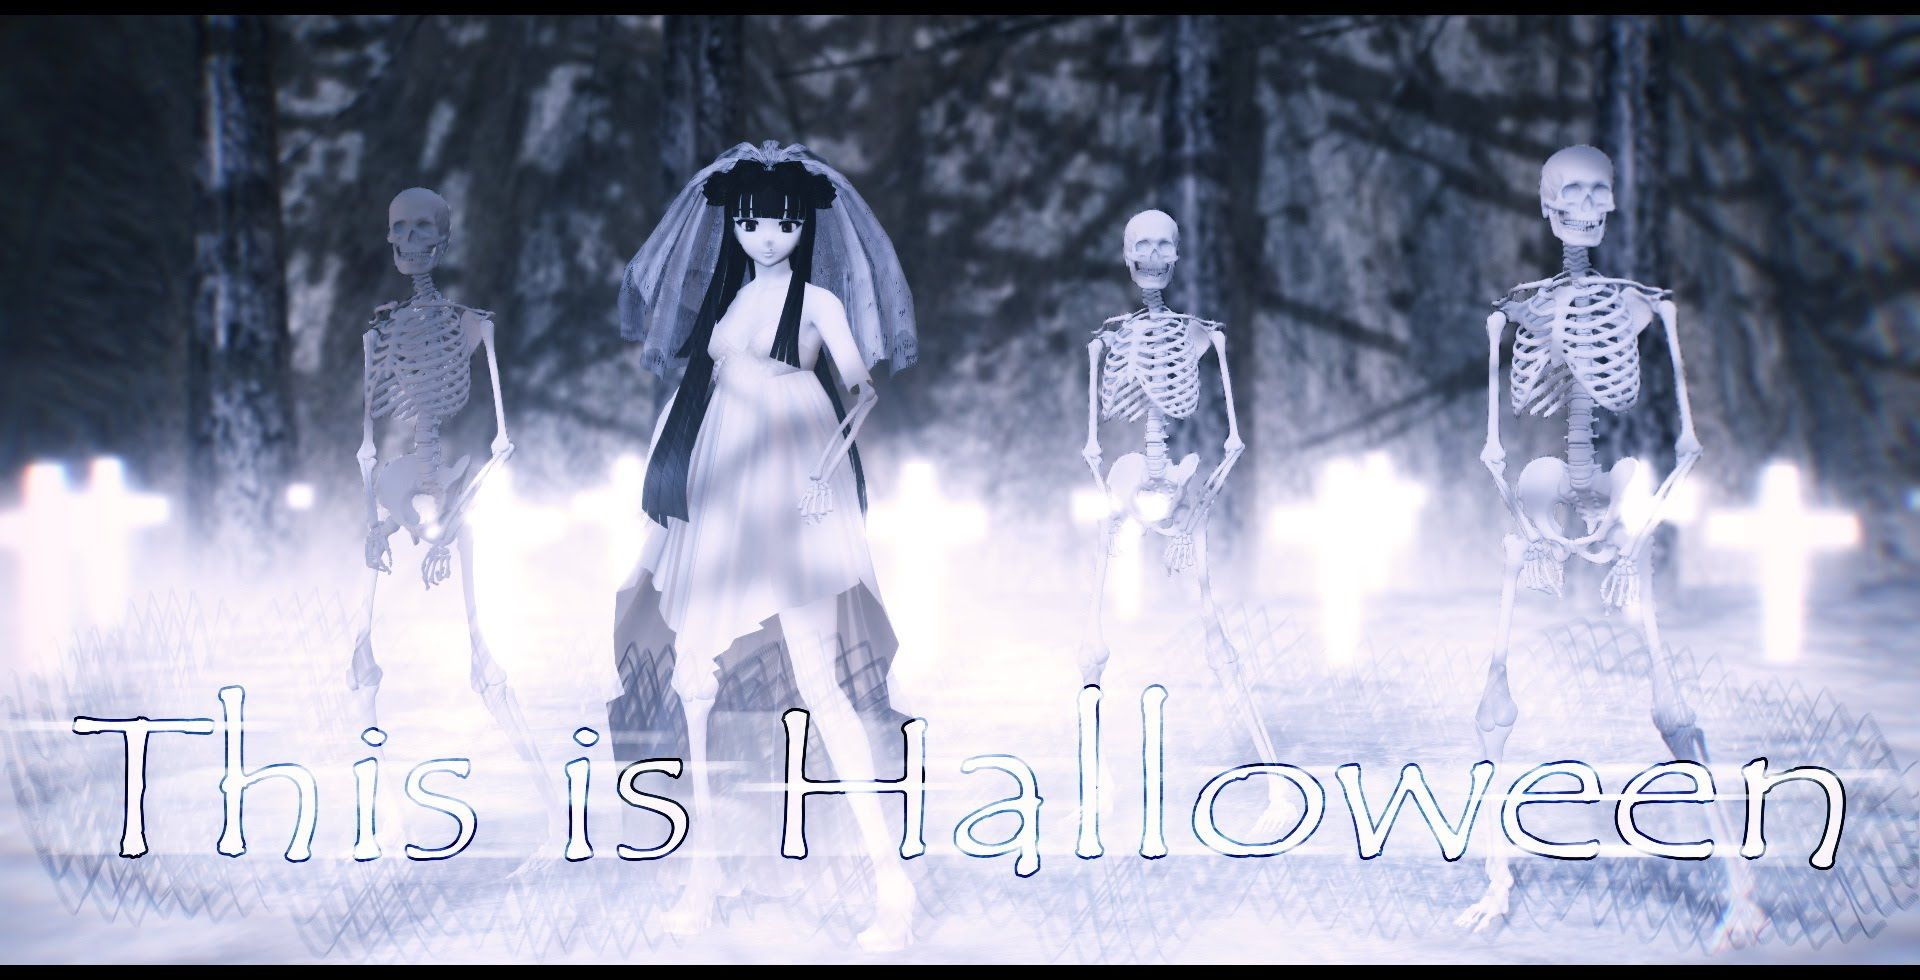 mmd】✞ this is halloween ✞ (female cover) | mmd songs | pinterest